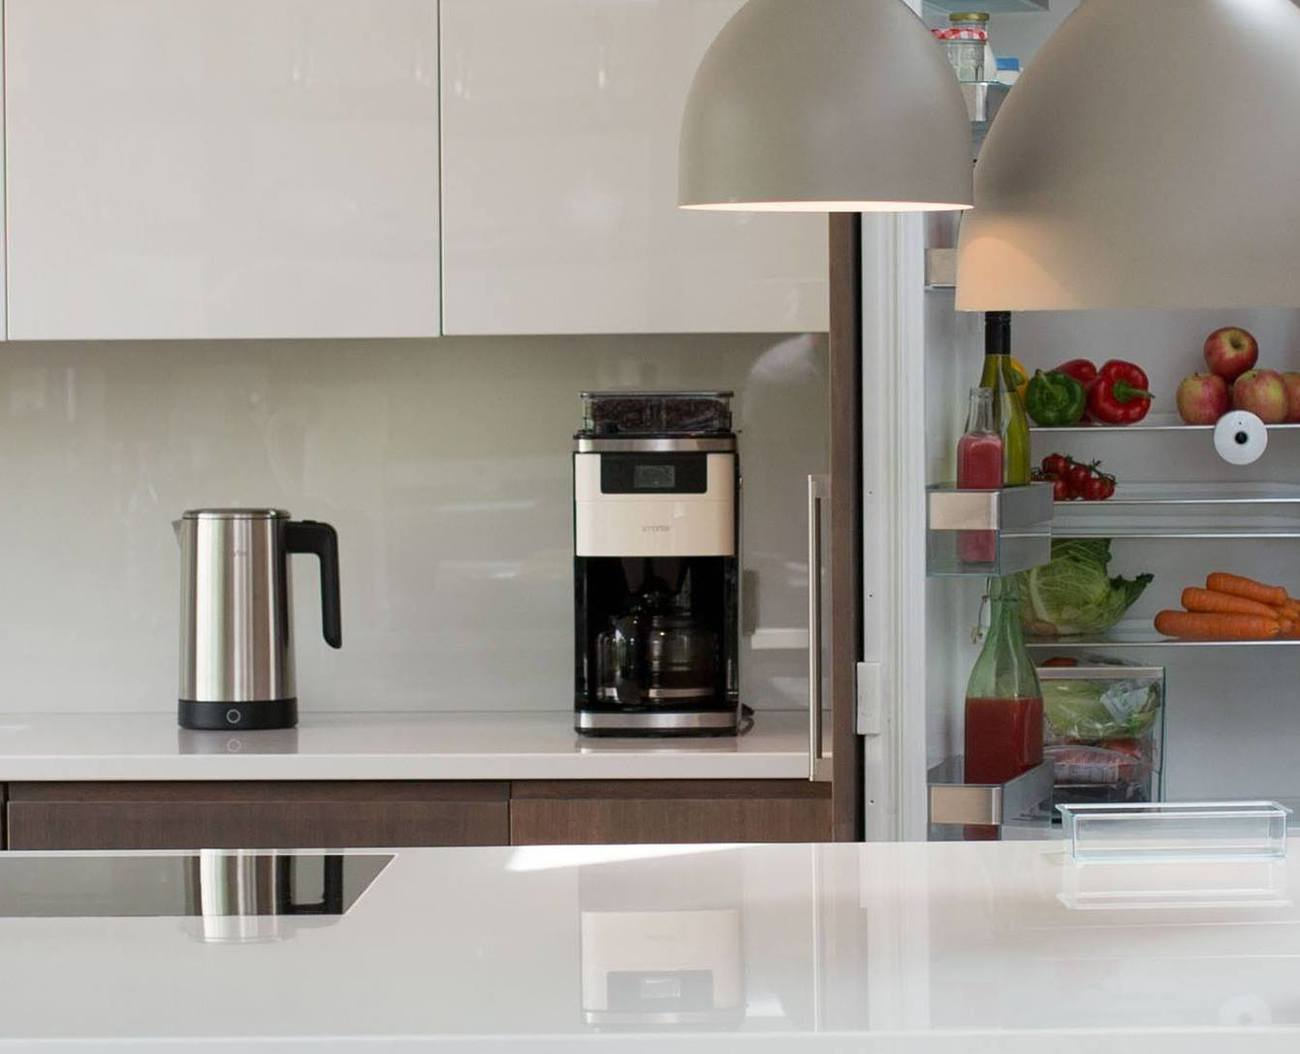 Smarter Connected Coffee Machine